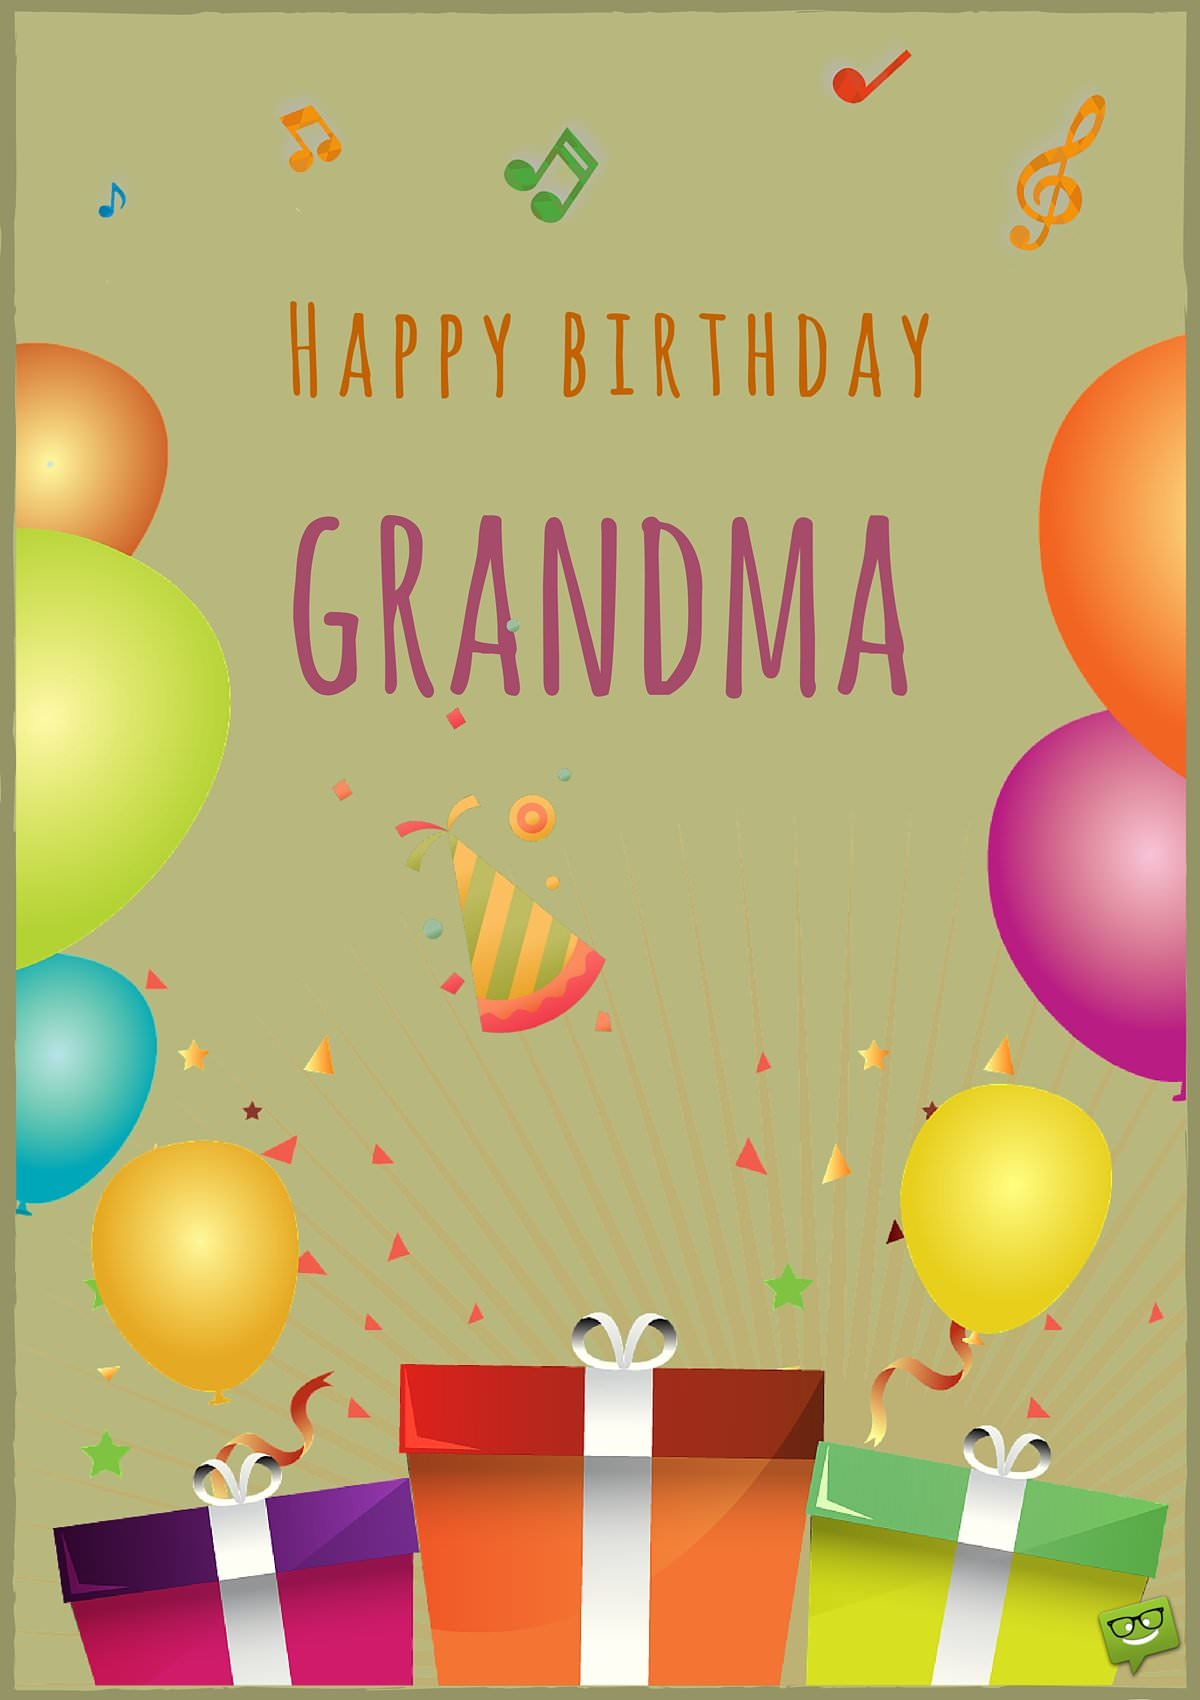 Grandma Birthday To Your Grandmother A Personalized Card Sent From Heart Is Treasure